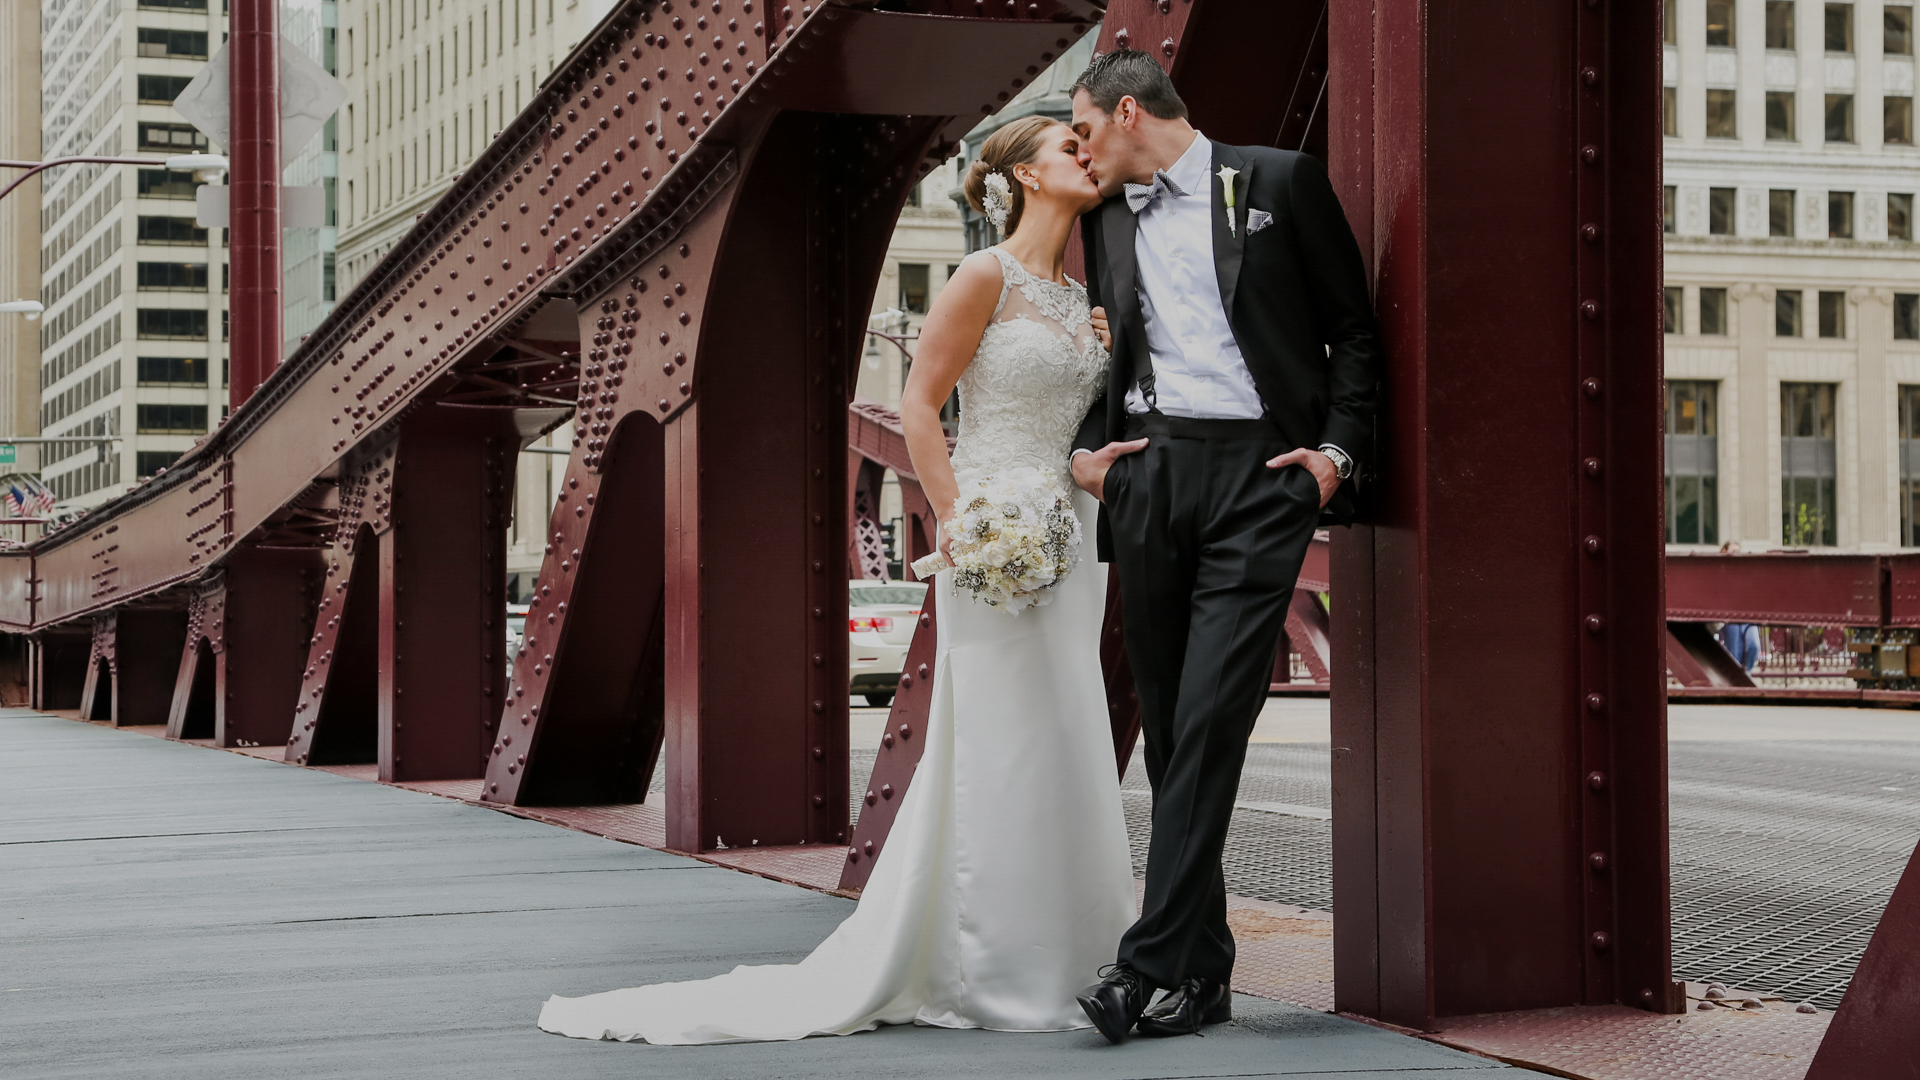 Check portfolios, pricing and availability for wedding photographers in Chicago